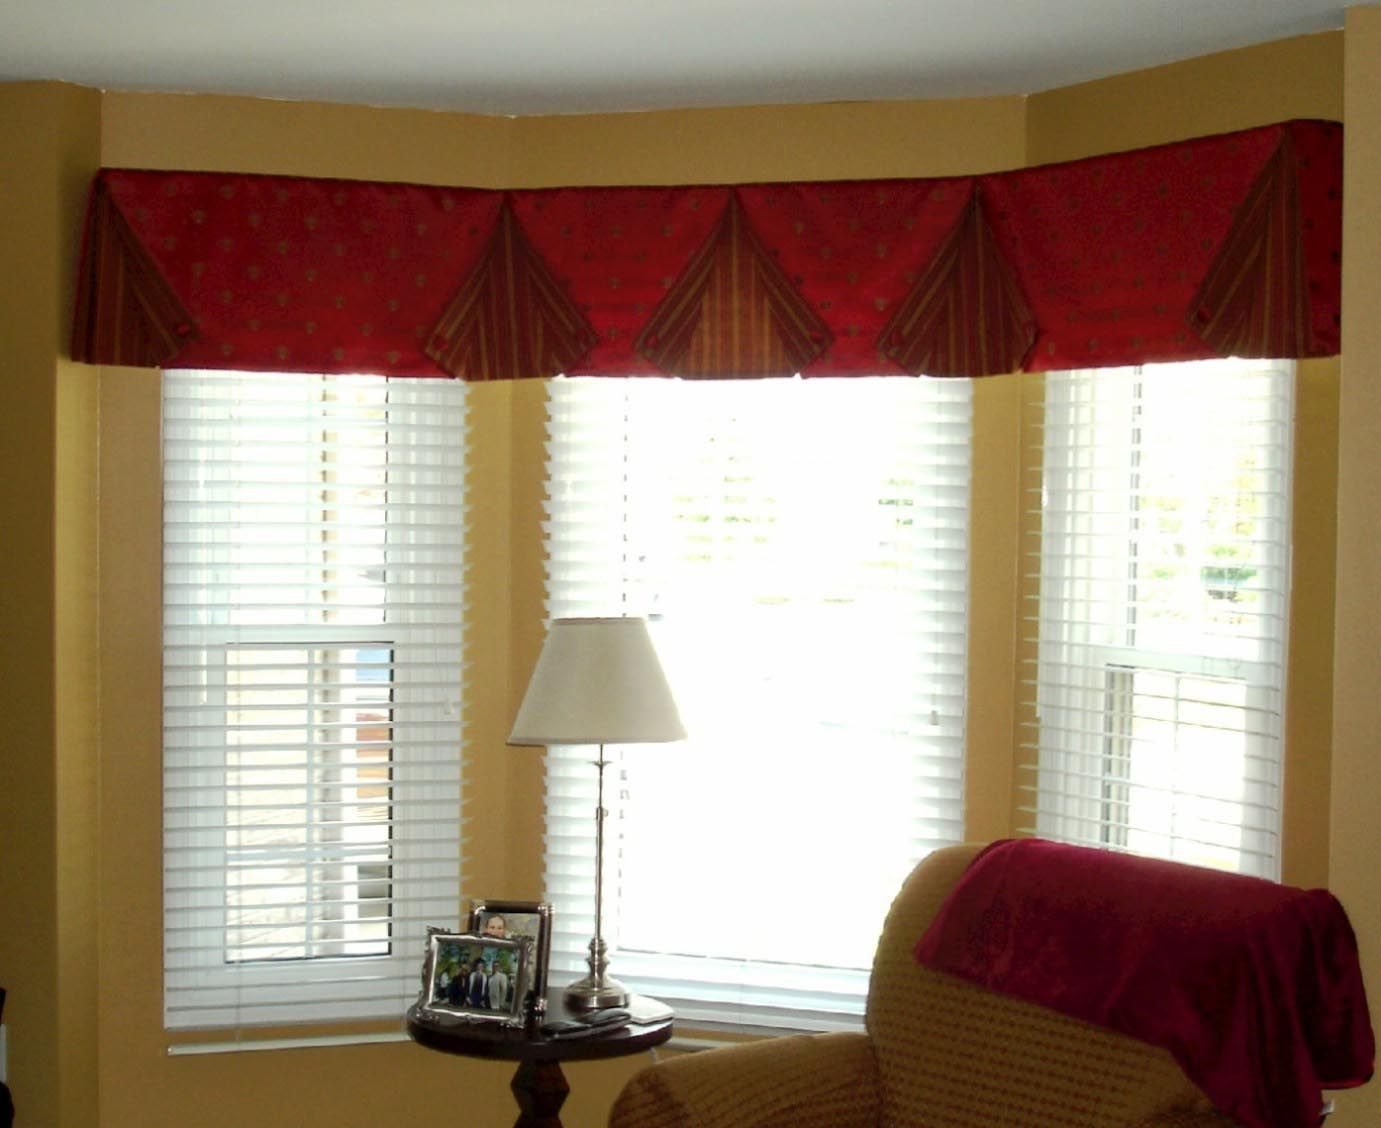 Living Room Valance Ideas Valances For Living Room Window Treatments Living Room Curtains Living Room